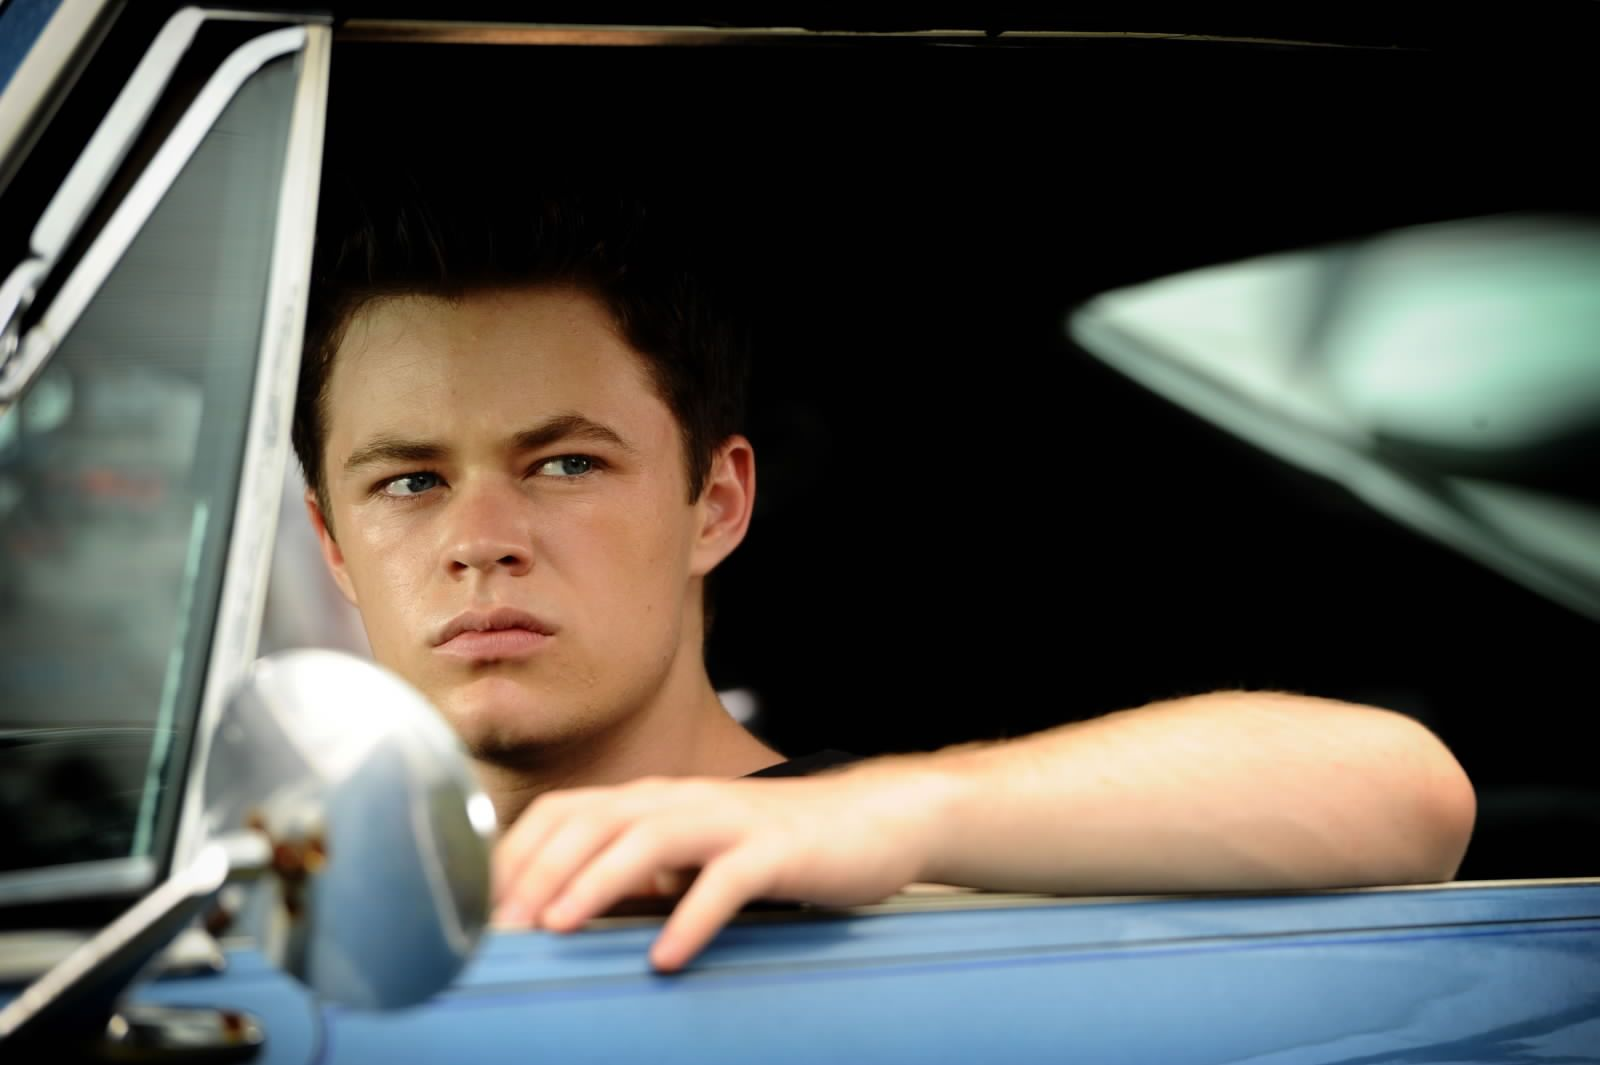 harrison gilbertson computer wallpaper 68012